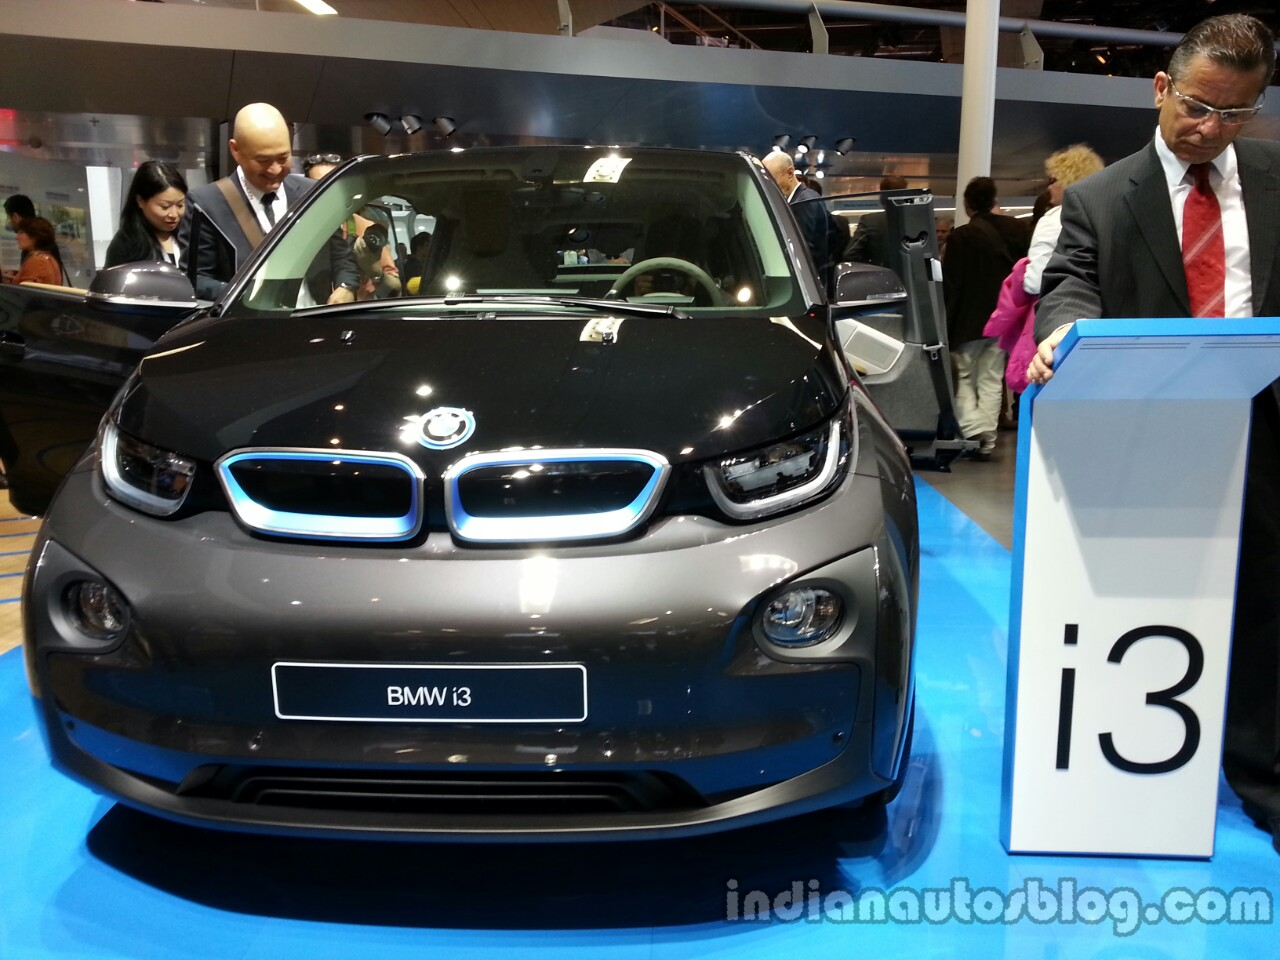 Front fascia of the BMW i3